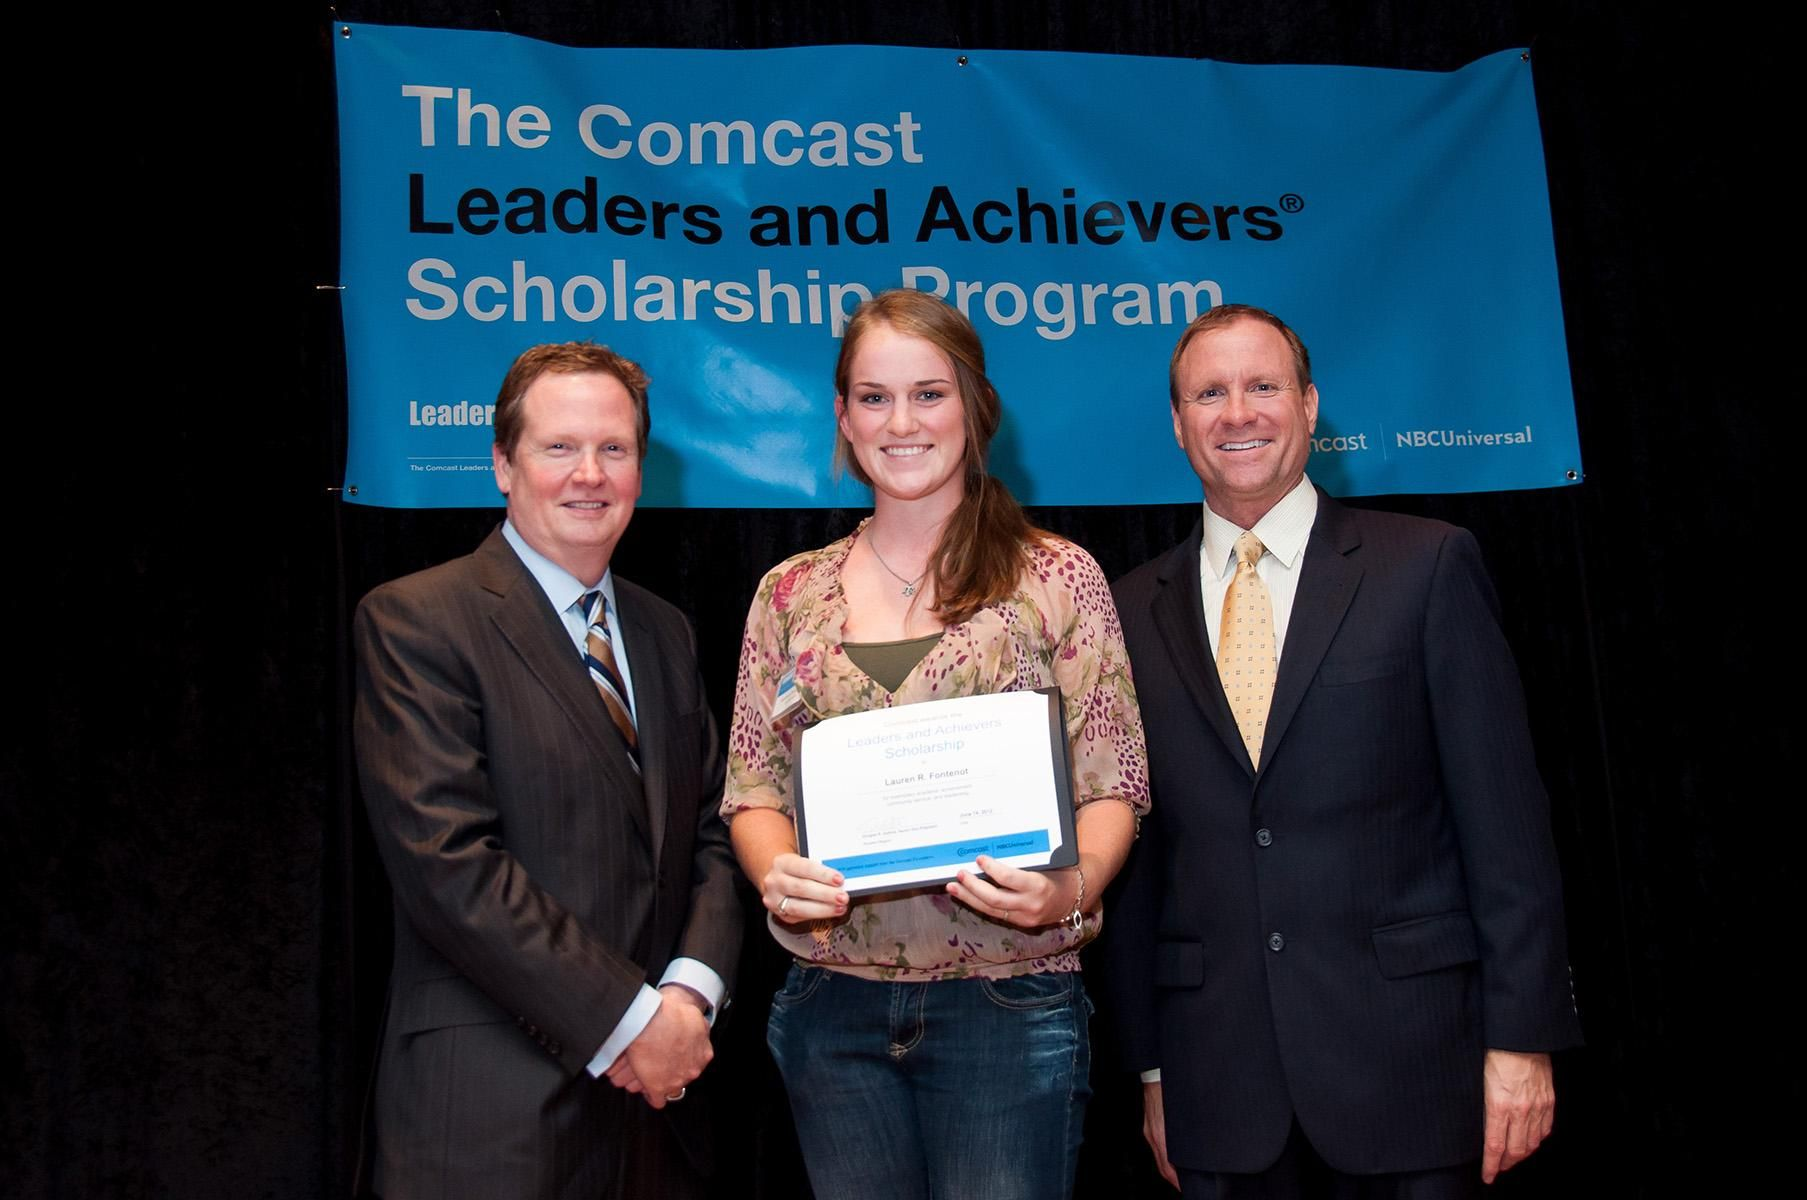 Comcast Leaders And Achievers Scholarship For High School